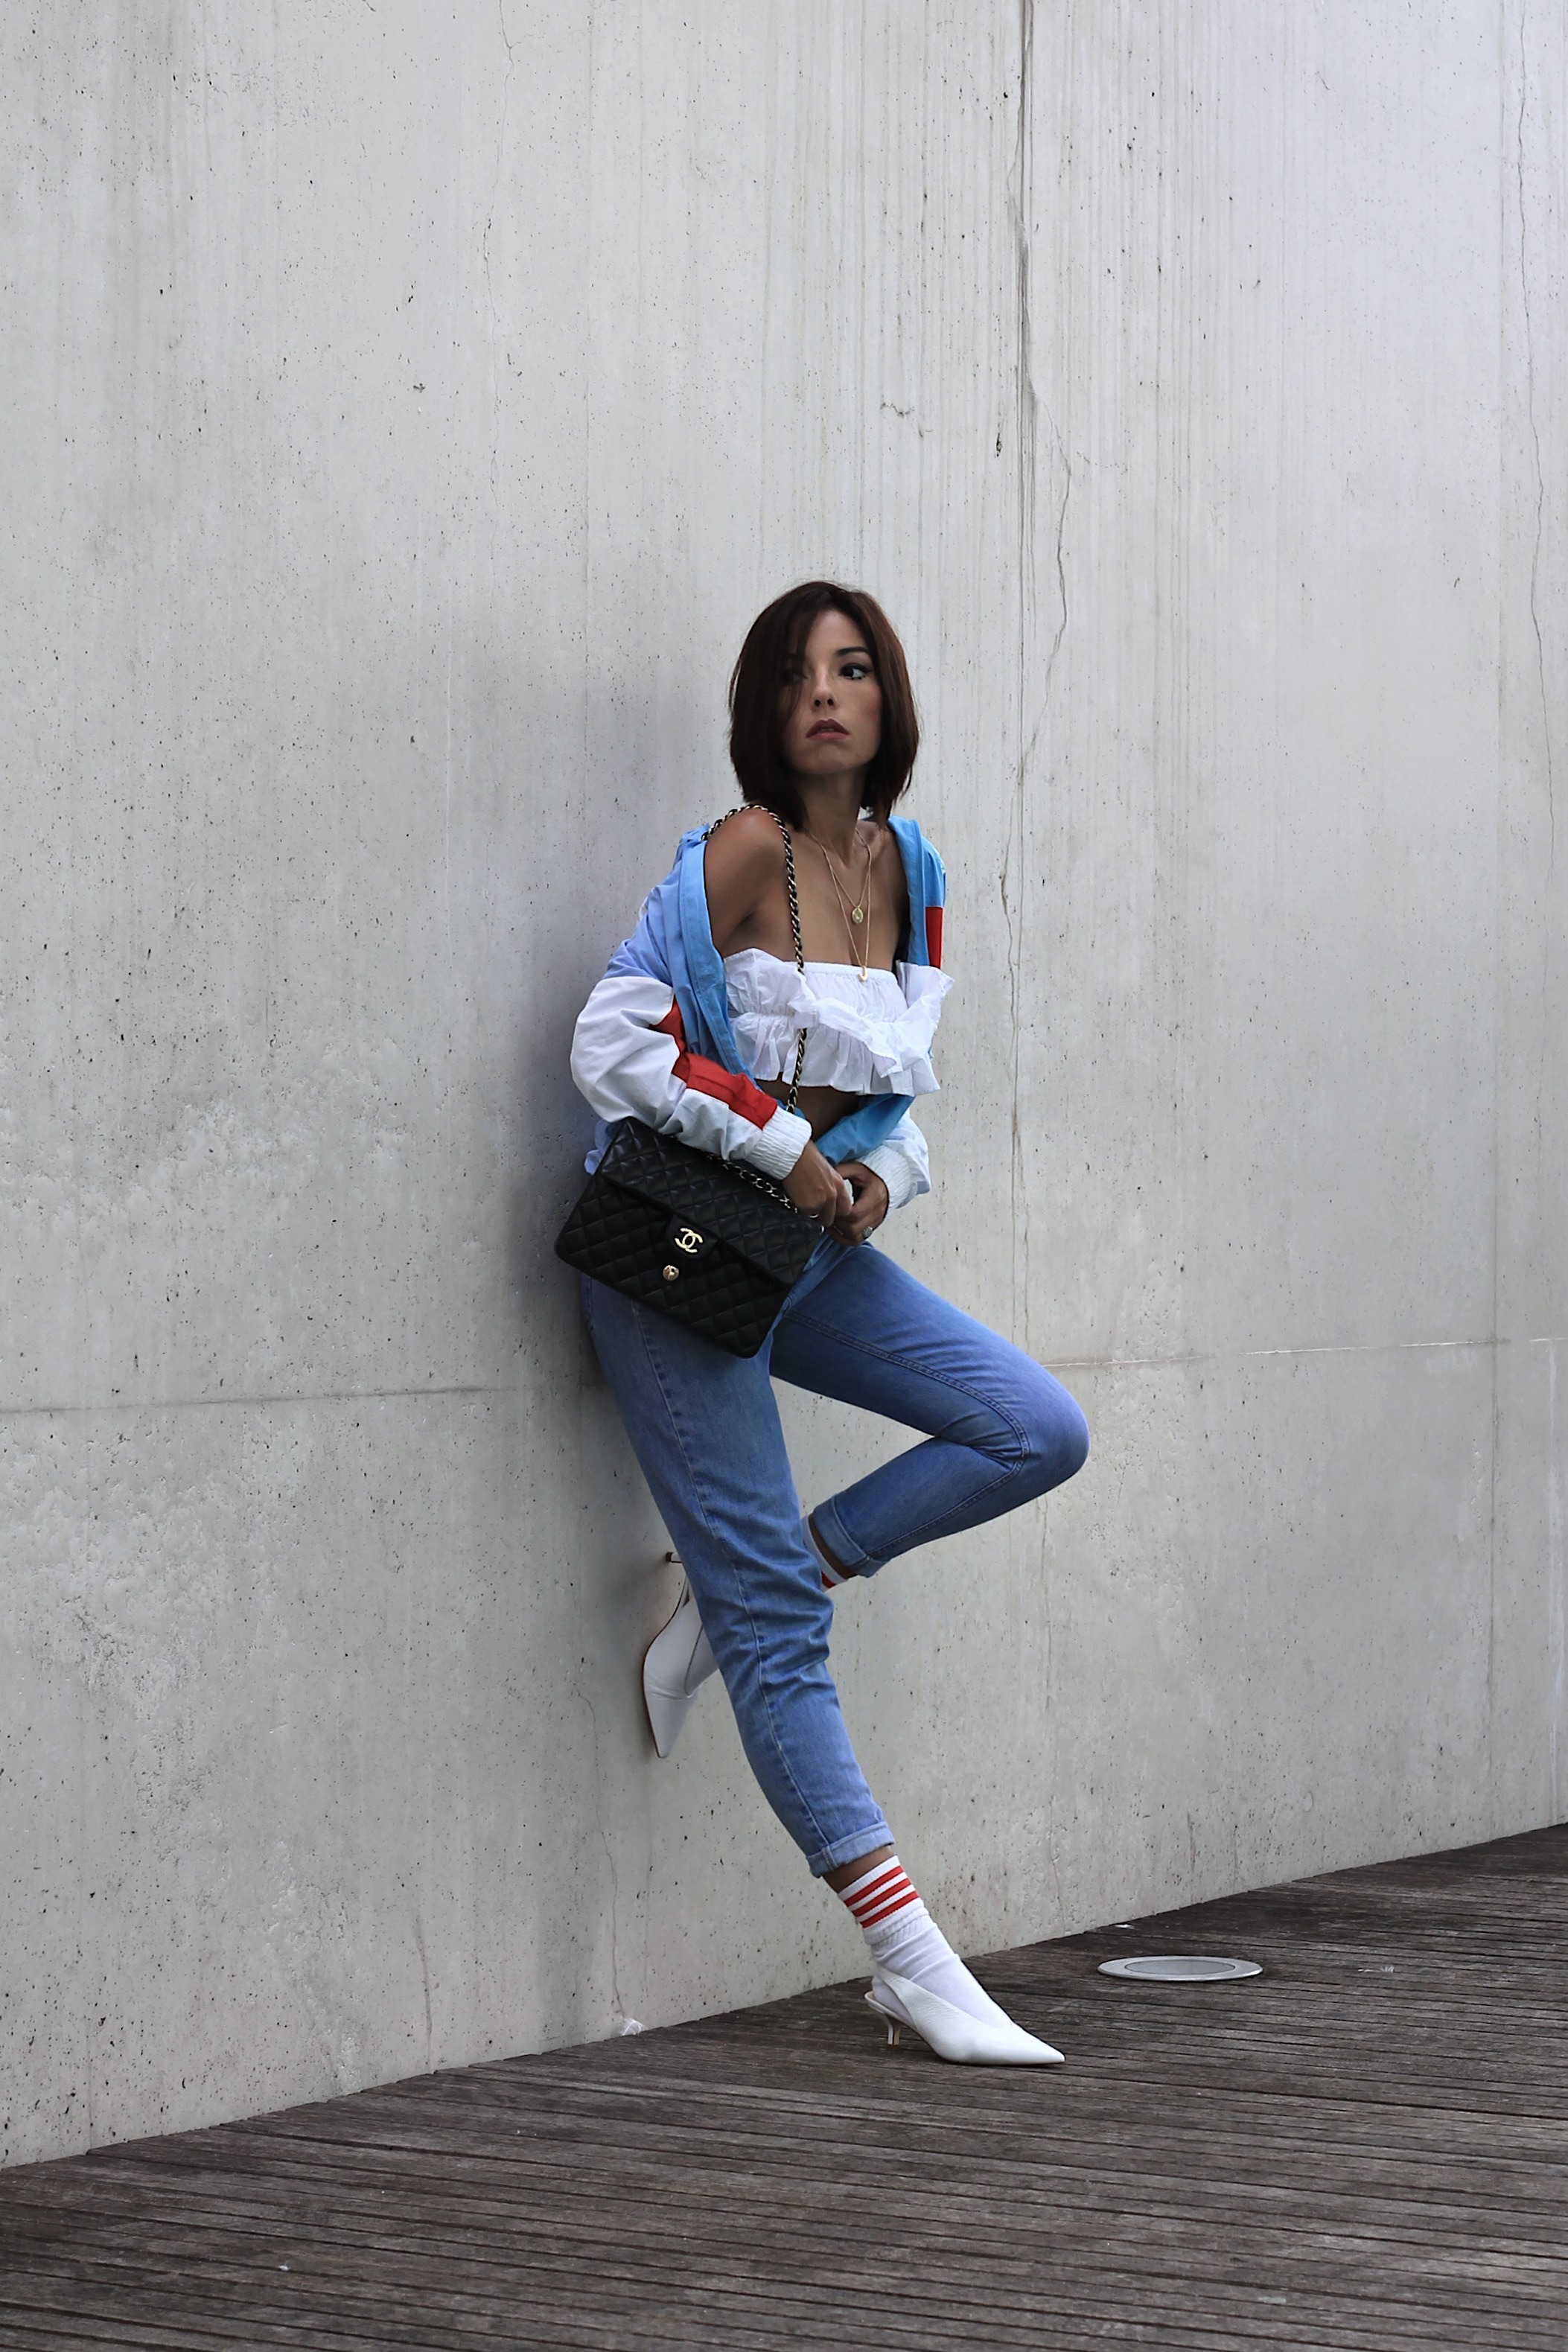 Cosa si cerca sui social network, come vestirsi sporty chic, theladycracy.it, elisa bellino, fashion blog 2017, fashion blogger italia 2017, blogger moda 2017, reebok felpe inverno 2017, reebok felpe stile anni 90, zara scarpe autunno inverno 2017, chanel 2.55 timeless, come si mettono le calze sportive con i tacchi, blogger moda più seguite 2017, fashion blogger famose 2017, outfit moda autunno 2017, reebok sweater fall 2017, chanel 2.55 borsa originale